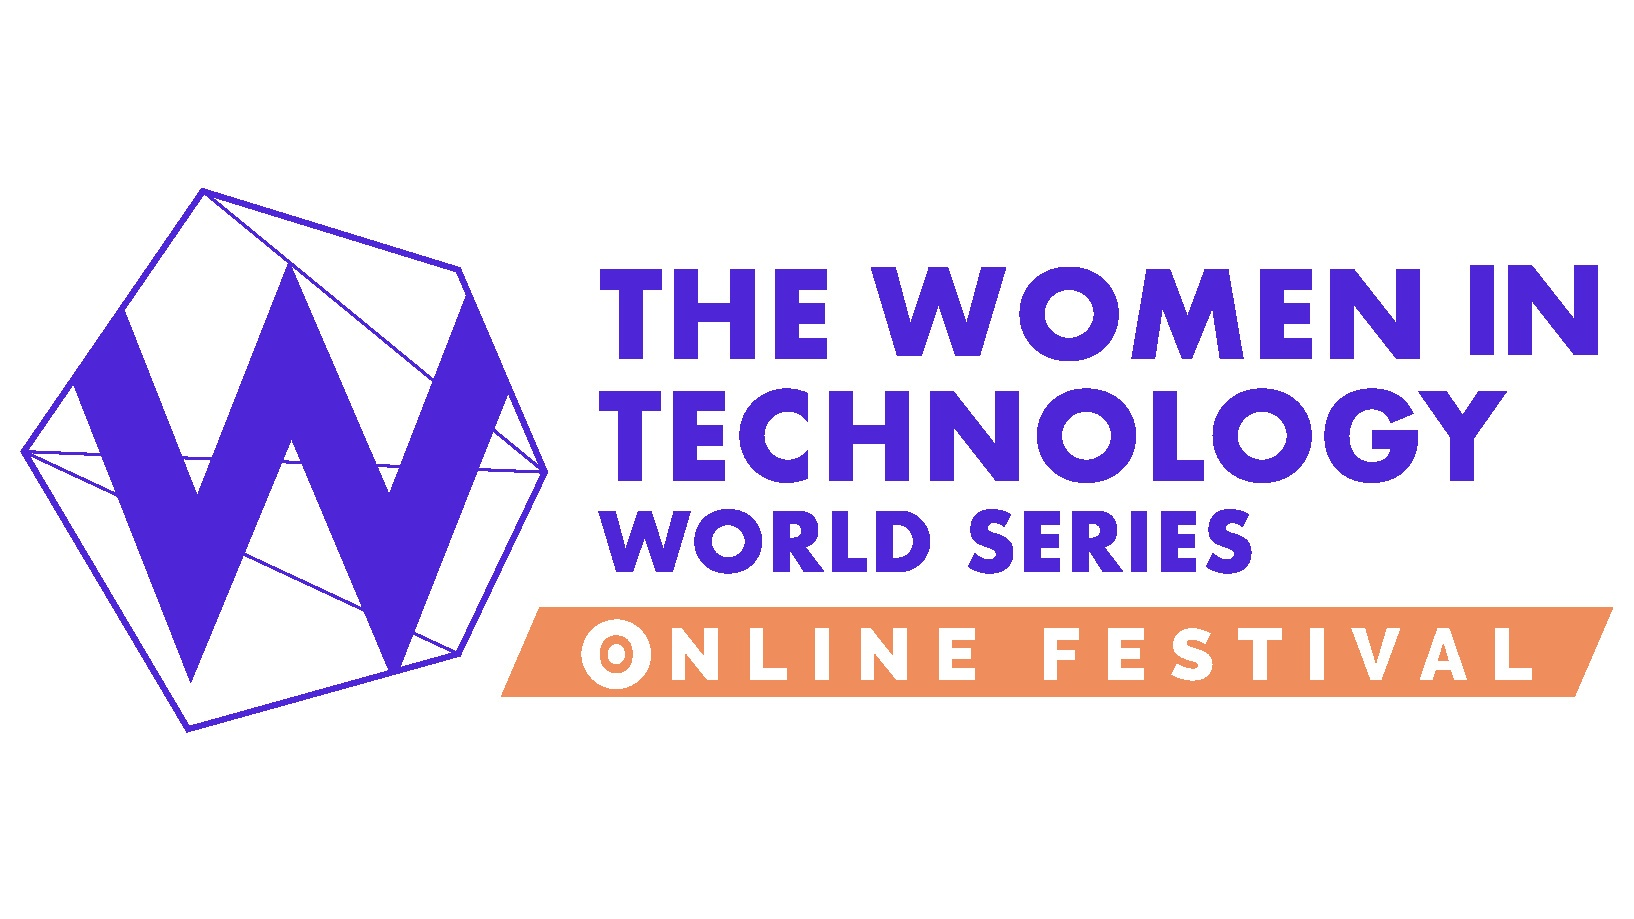 The Women Technology World Series